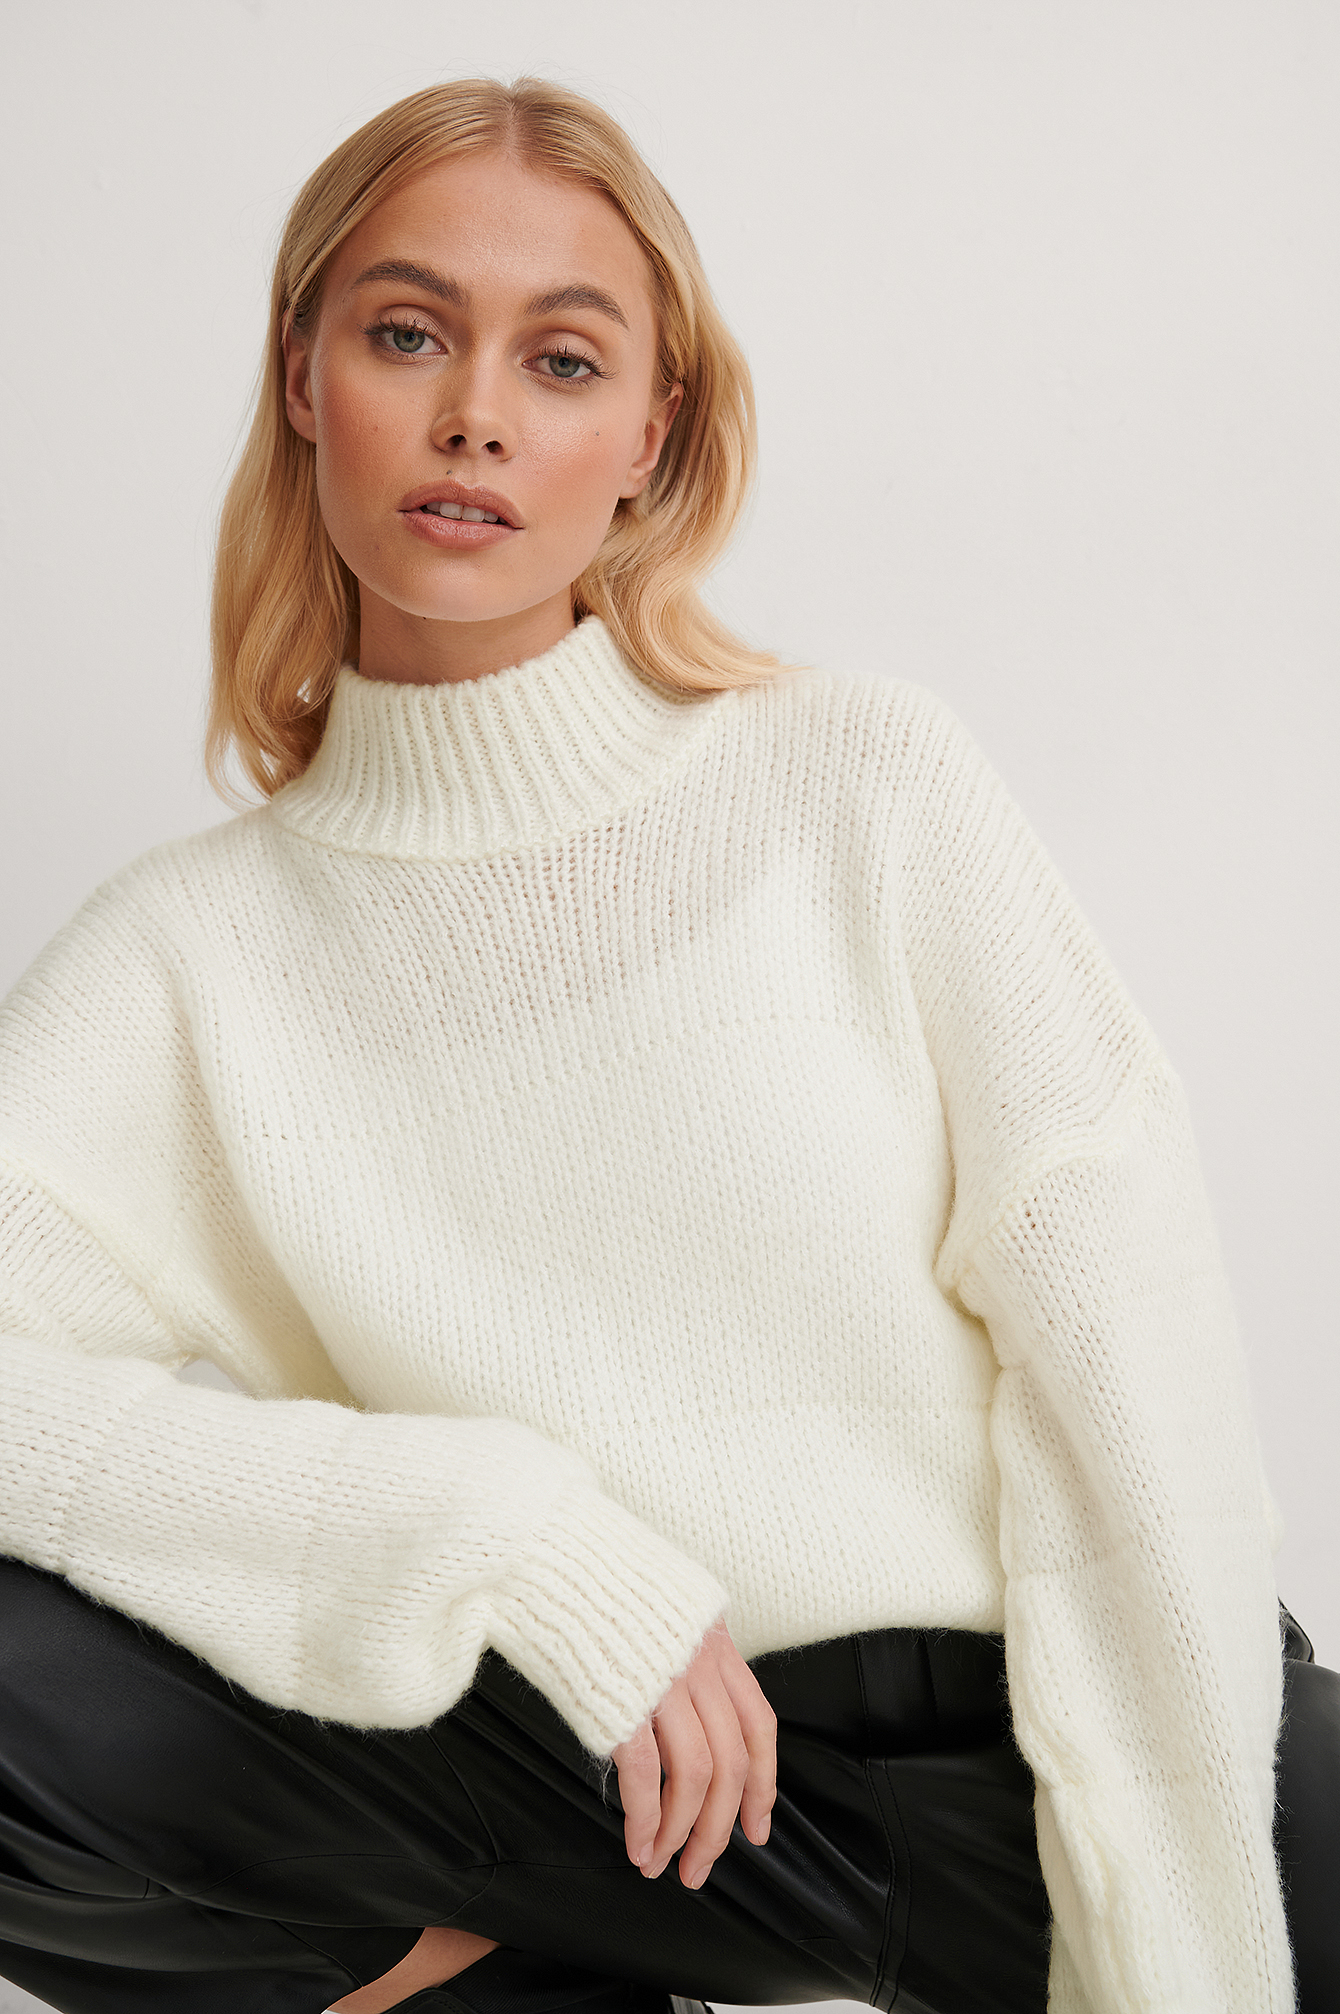 Ecru Turtleneck Knit Sweater